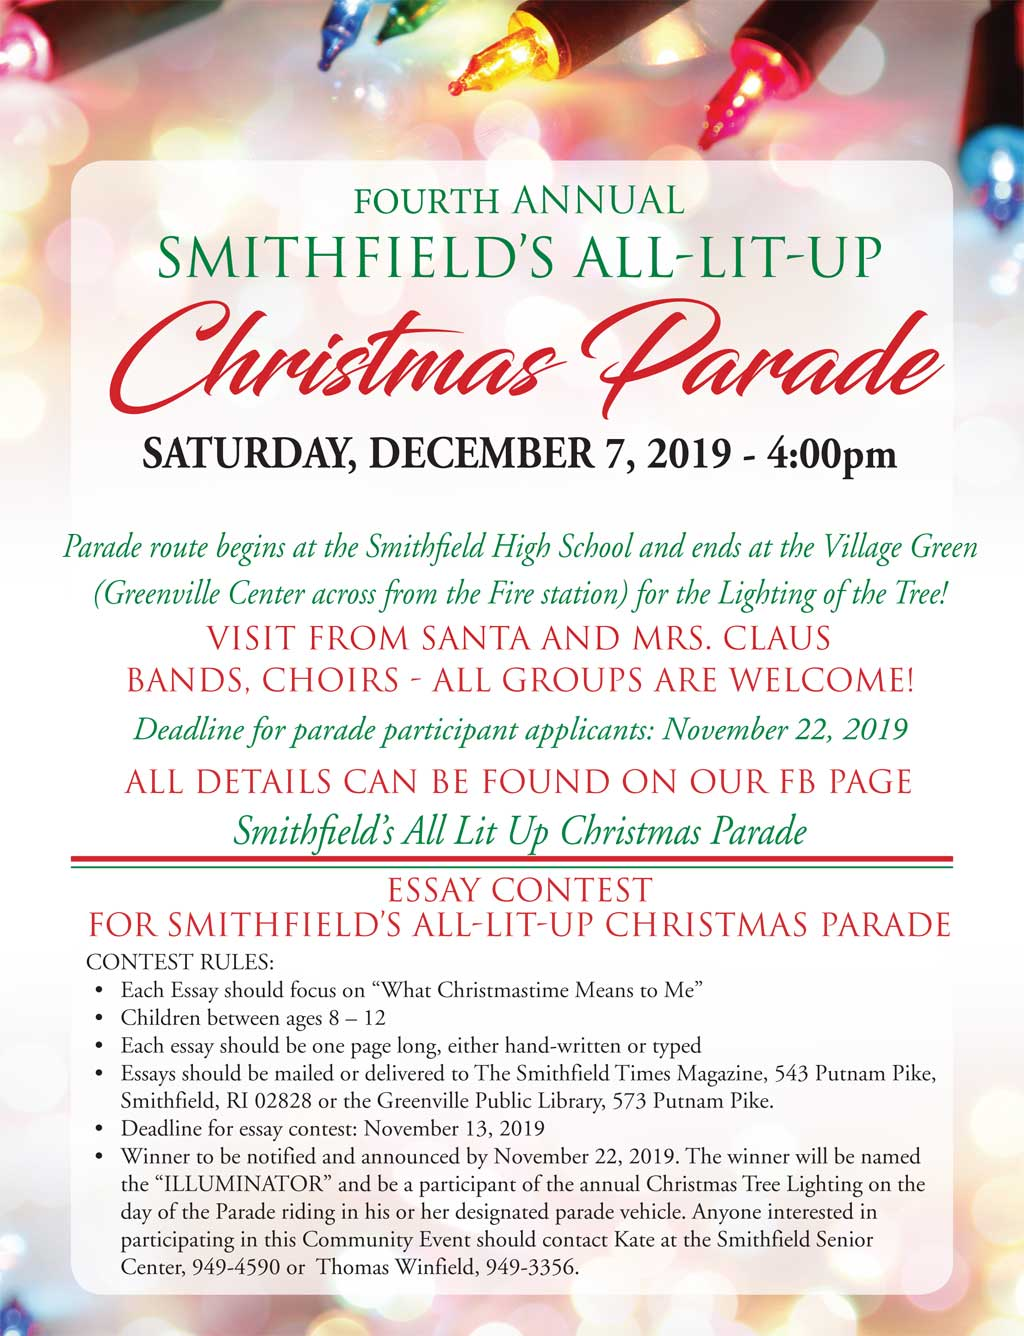 Fourth Annual Smithfield's All-Lit-Up Christmas Parade Saturday, December 7, 2019 - 4:00pm Parade route begins at the Smithfield High School and ends at the Village Green (Greenville Center across from the Fire station) for the Lighting of the Tree! Visit From Santa and Mrs. Claus Bands, Choirs - All Groups Are Welcome! Deadline for parade participant applicants: November 22, 2019 All Details Can Be Found On Our FB Page: Smithfield's All Lit Up Christmas Parade